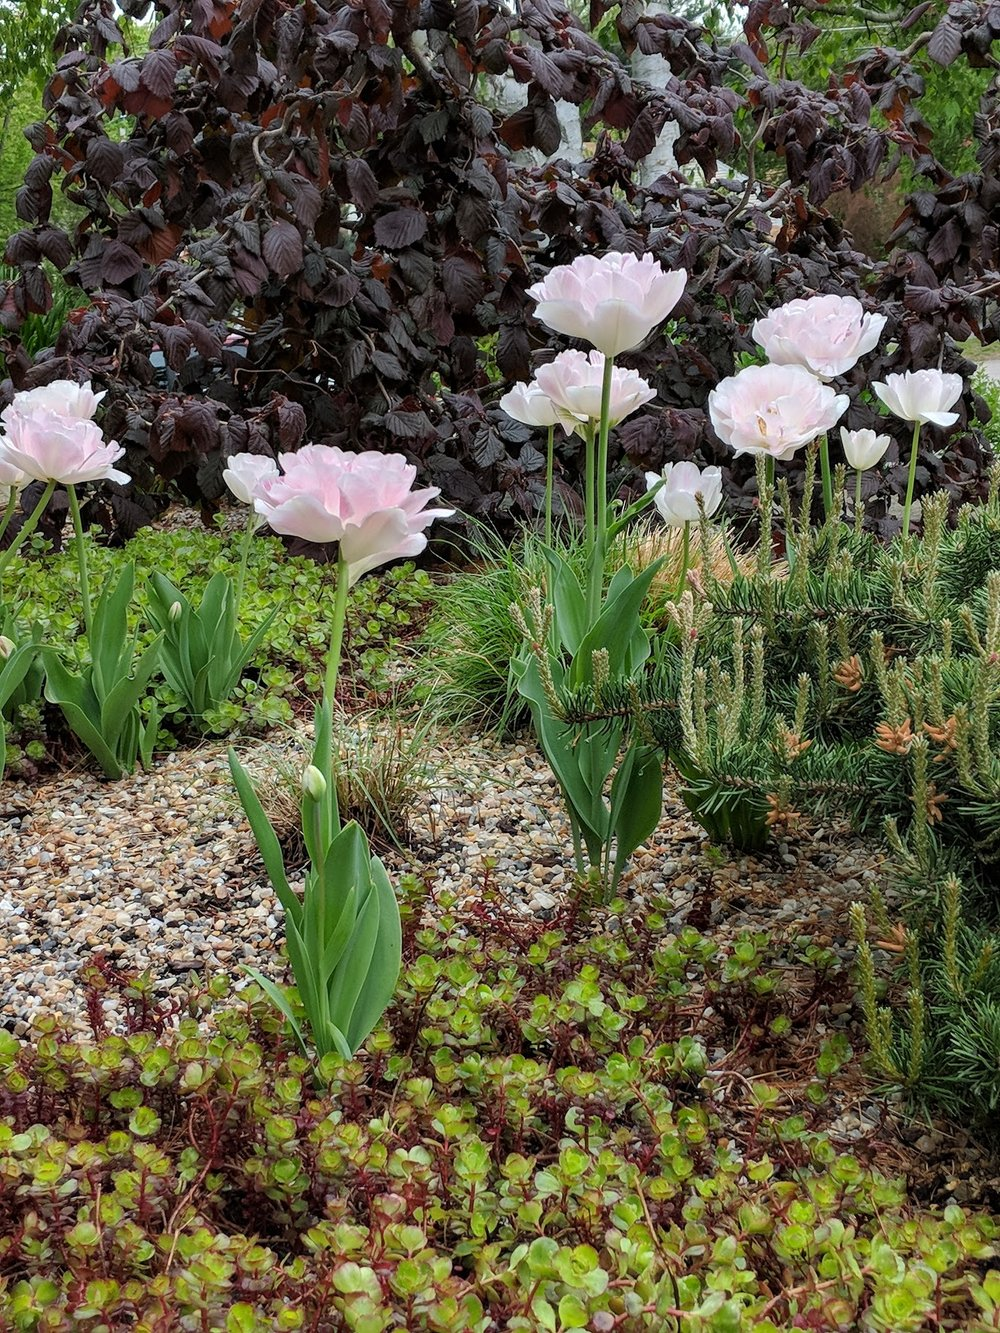 'Angelique' tulips contrast beautifully with the purple foliage of Harry Lauder Walking Stick.